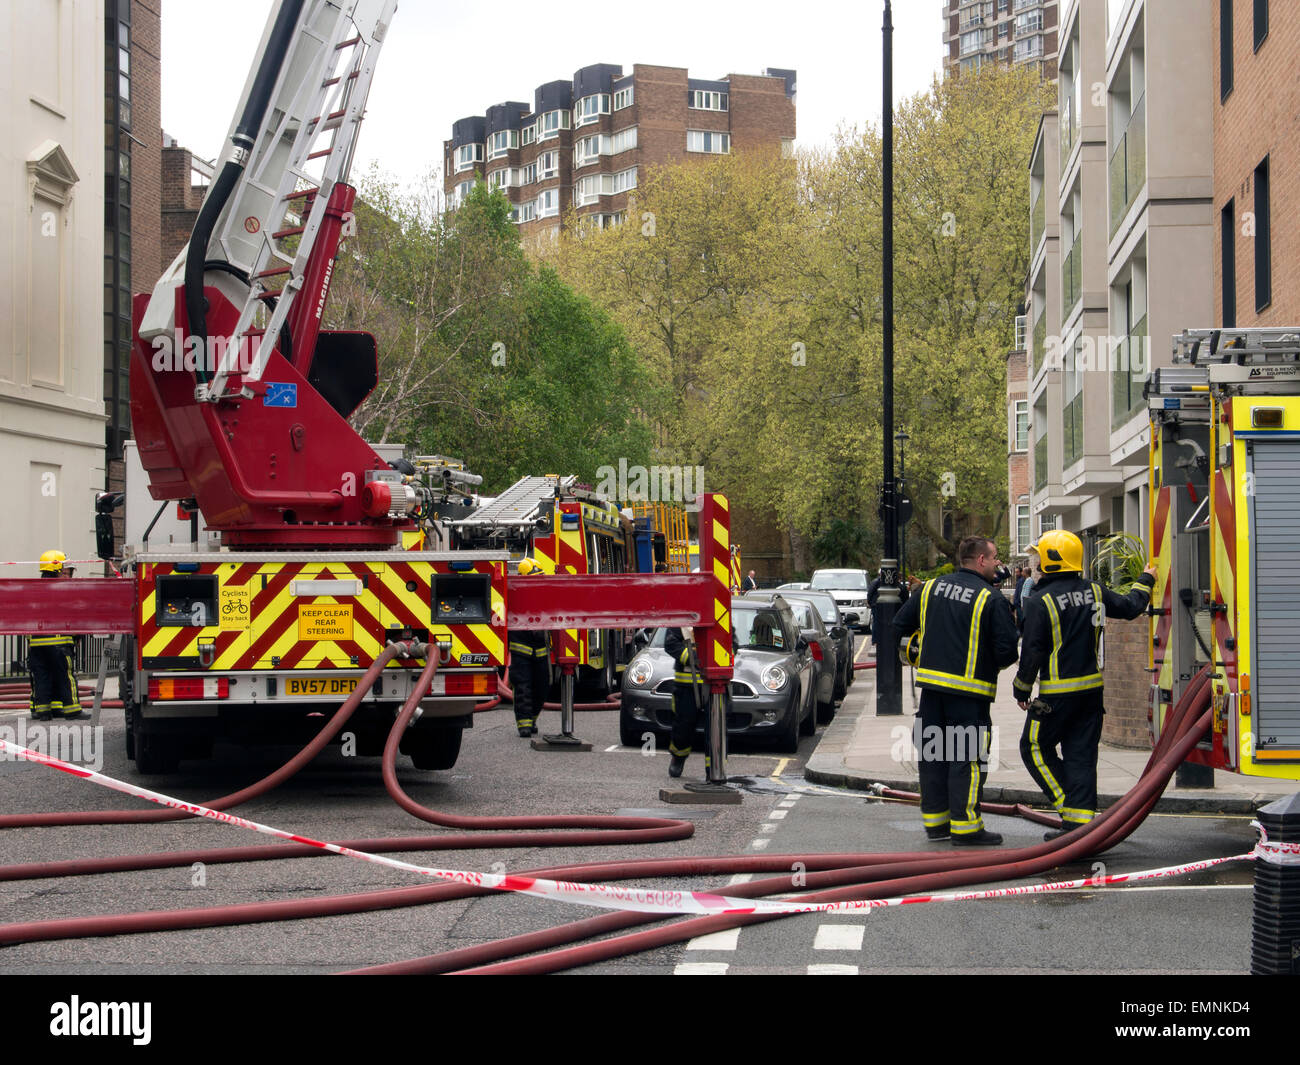 London, UK. 22nd April, 2015. London Fire Brigade fire appliances including a turntable ladder unit containing a - Stock Image